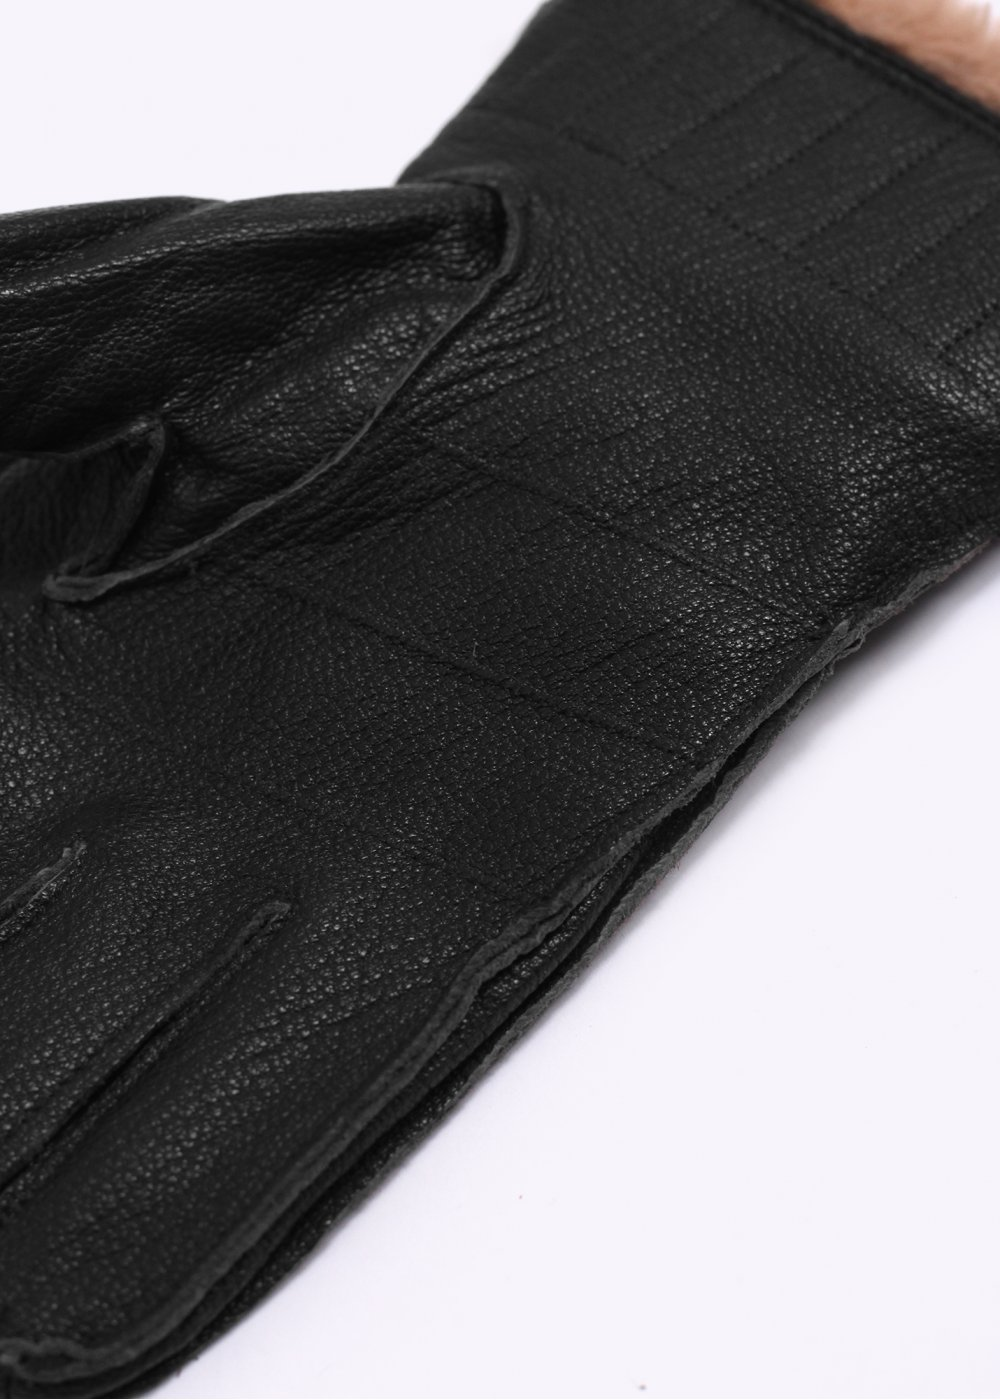 Barbour black leather utility gloves - Barbour Leather Utility Gloves Black